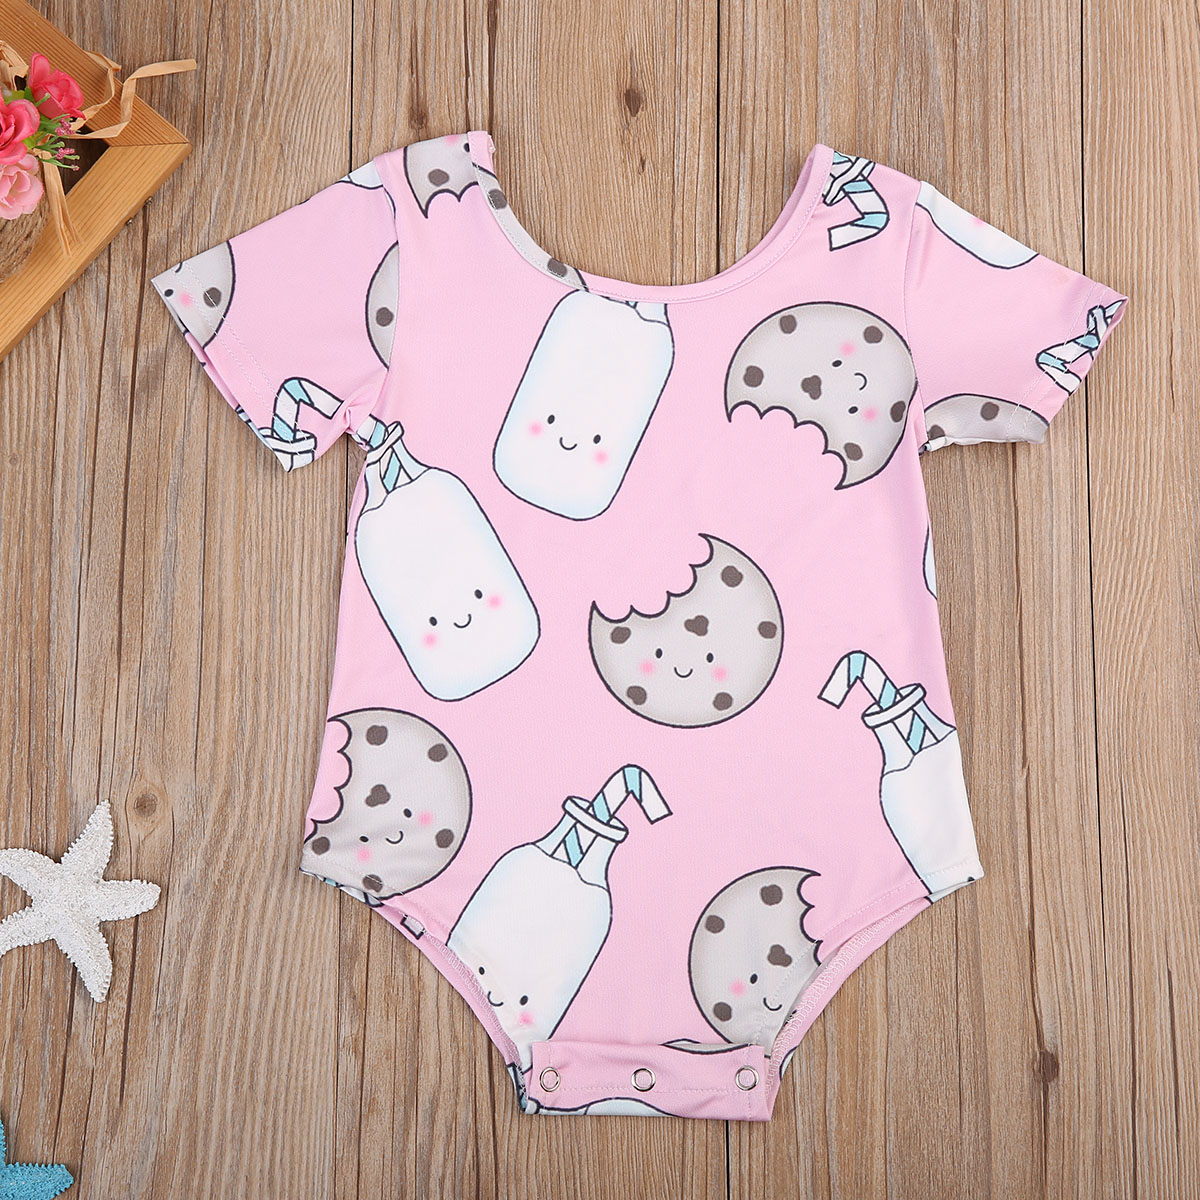 Summer Beach Style Lovely Toddler Infant Baby Girl Bodysuit White Blue Plaid Jumpsuit Clothes Outfits 0-18m Mother & Kids